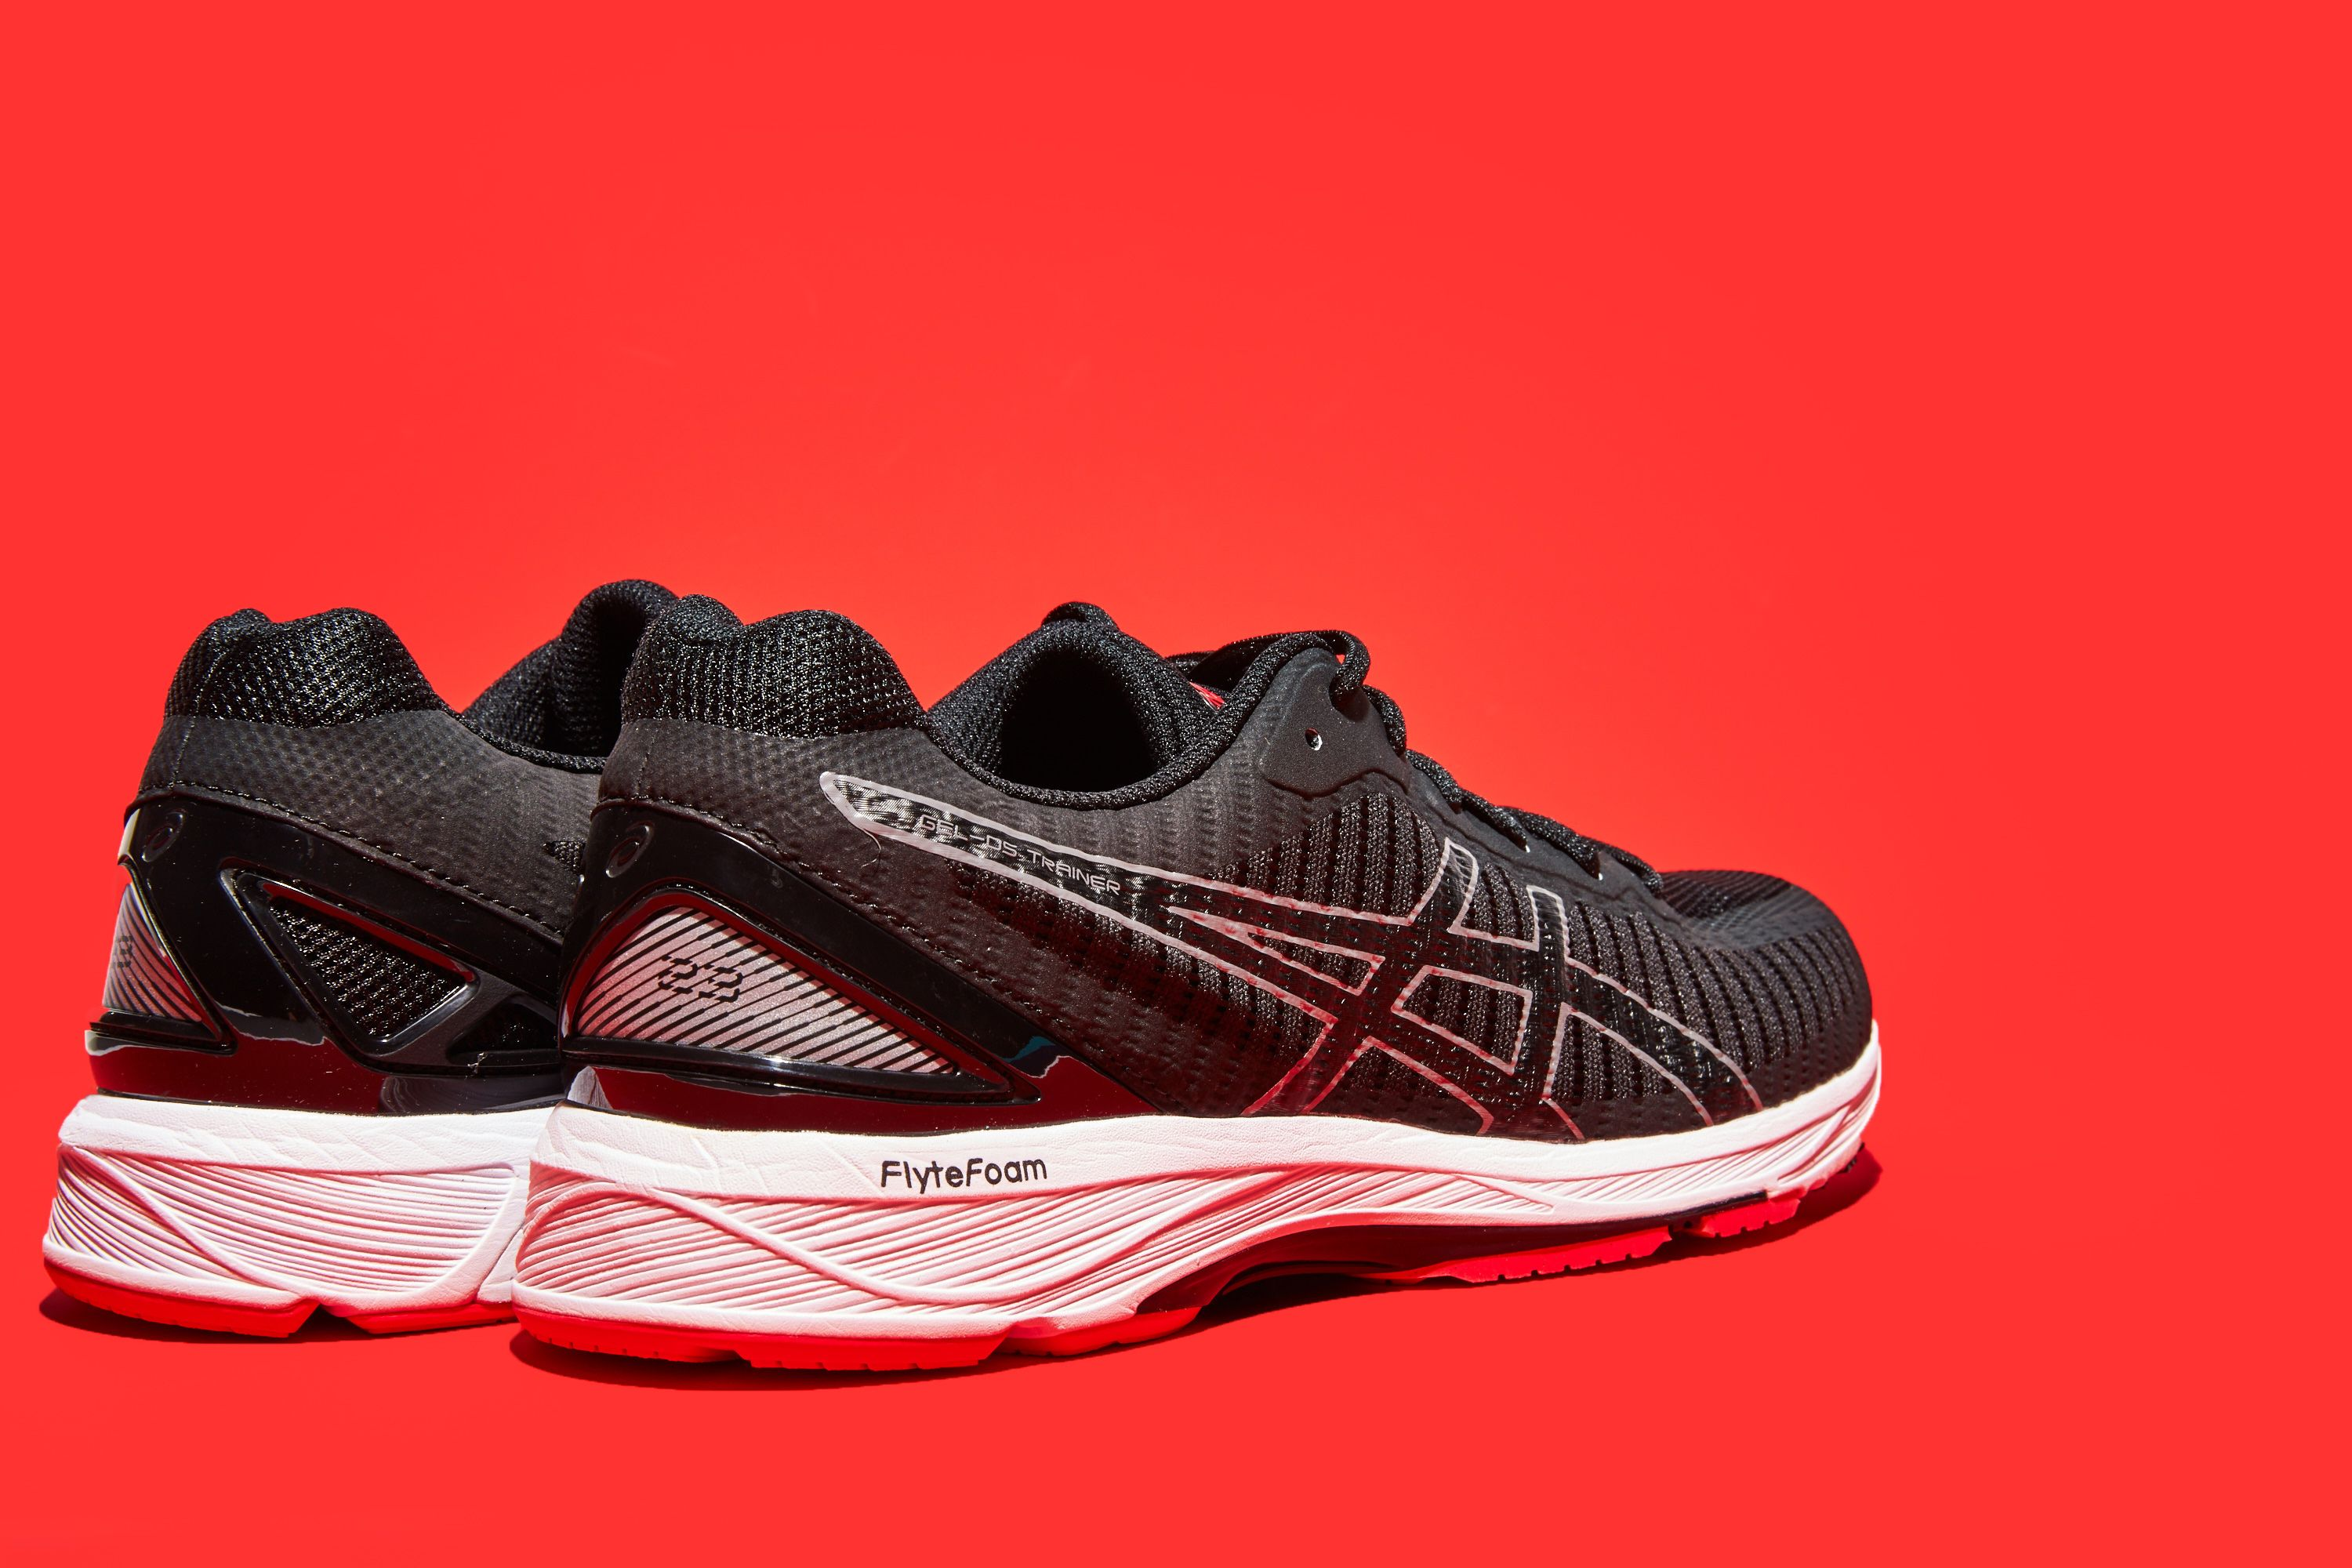 quality design 6daff ddfea Asics Gel-DS Trainer 23 Review — Lightweight Running Shoes